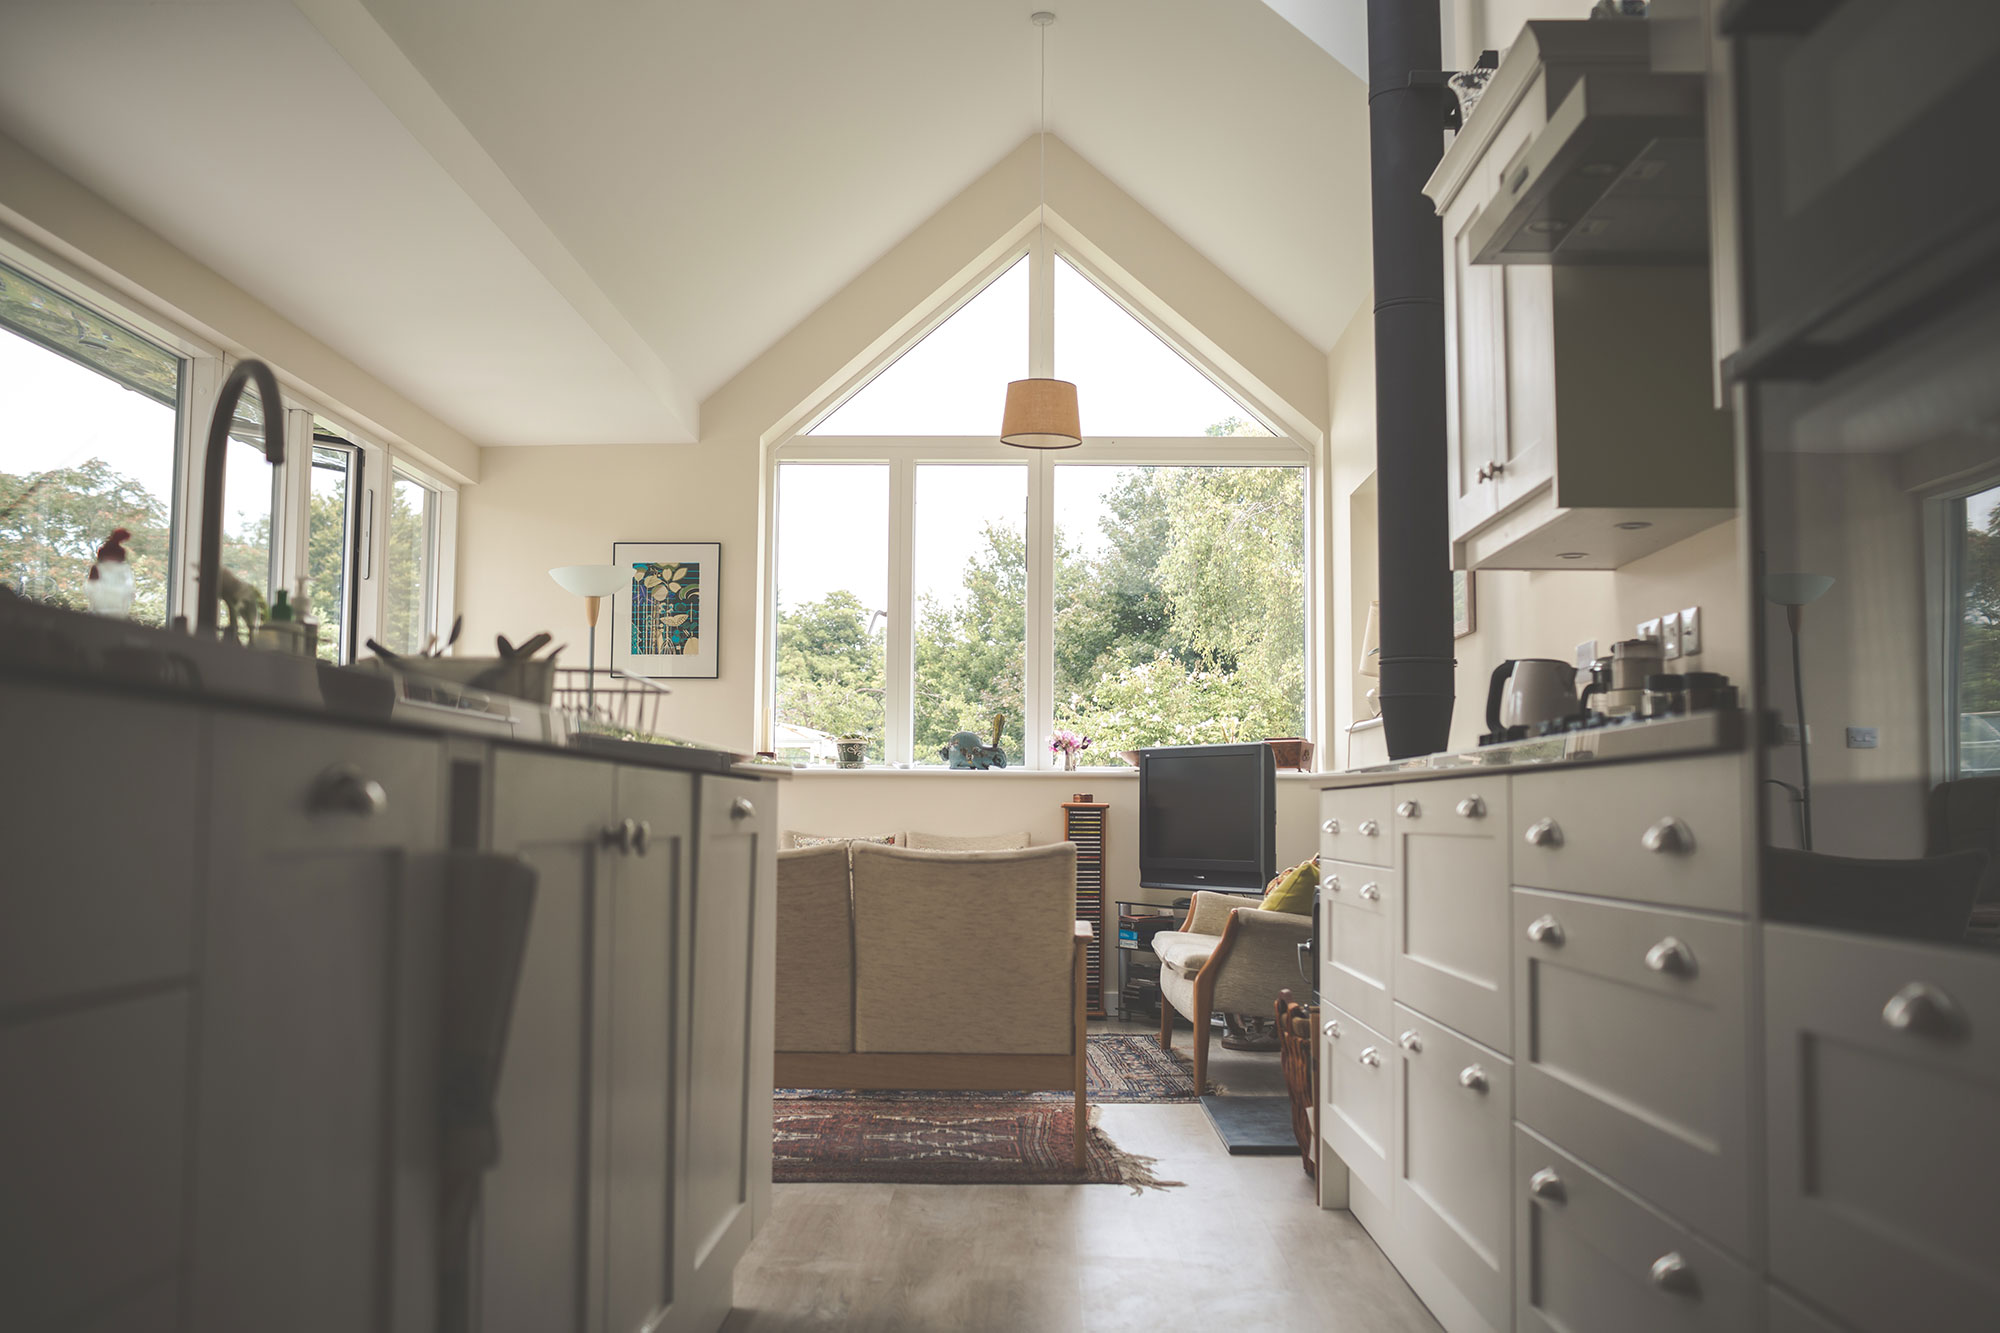 eco friendly self build next to listed cottage